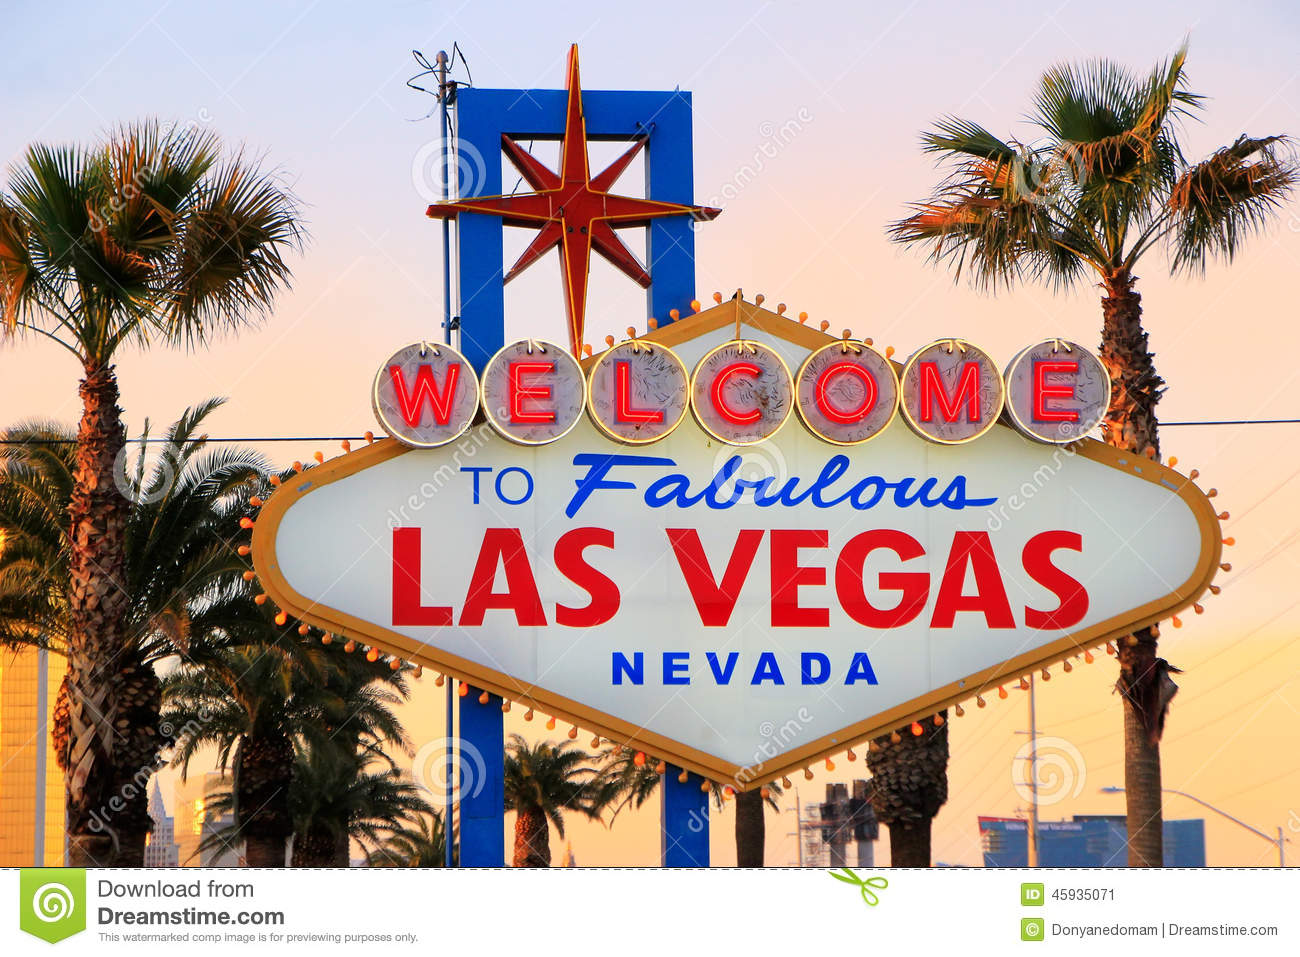 Stock footage welcome to fabulous las vegas sign with flashing lights - Welcome To Fabulous Las Vegas Sign At Night Nevada Stock Image